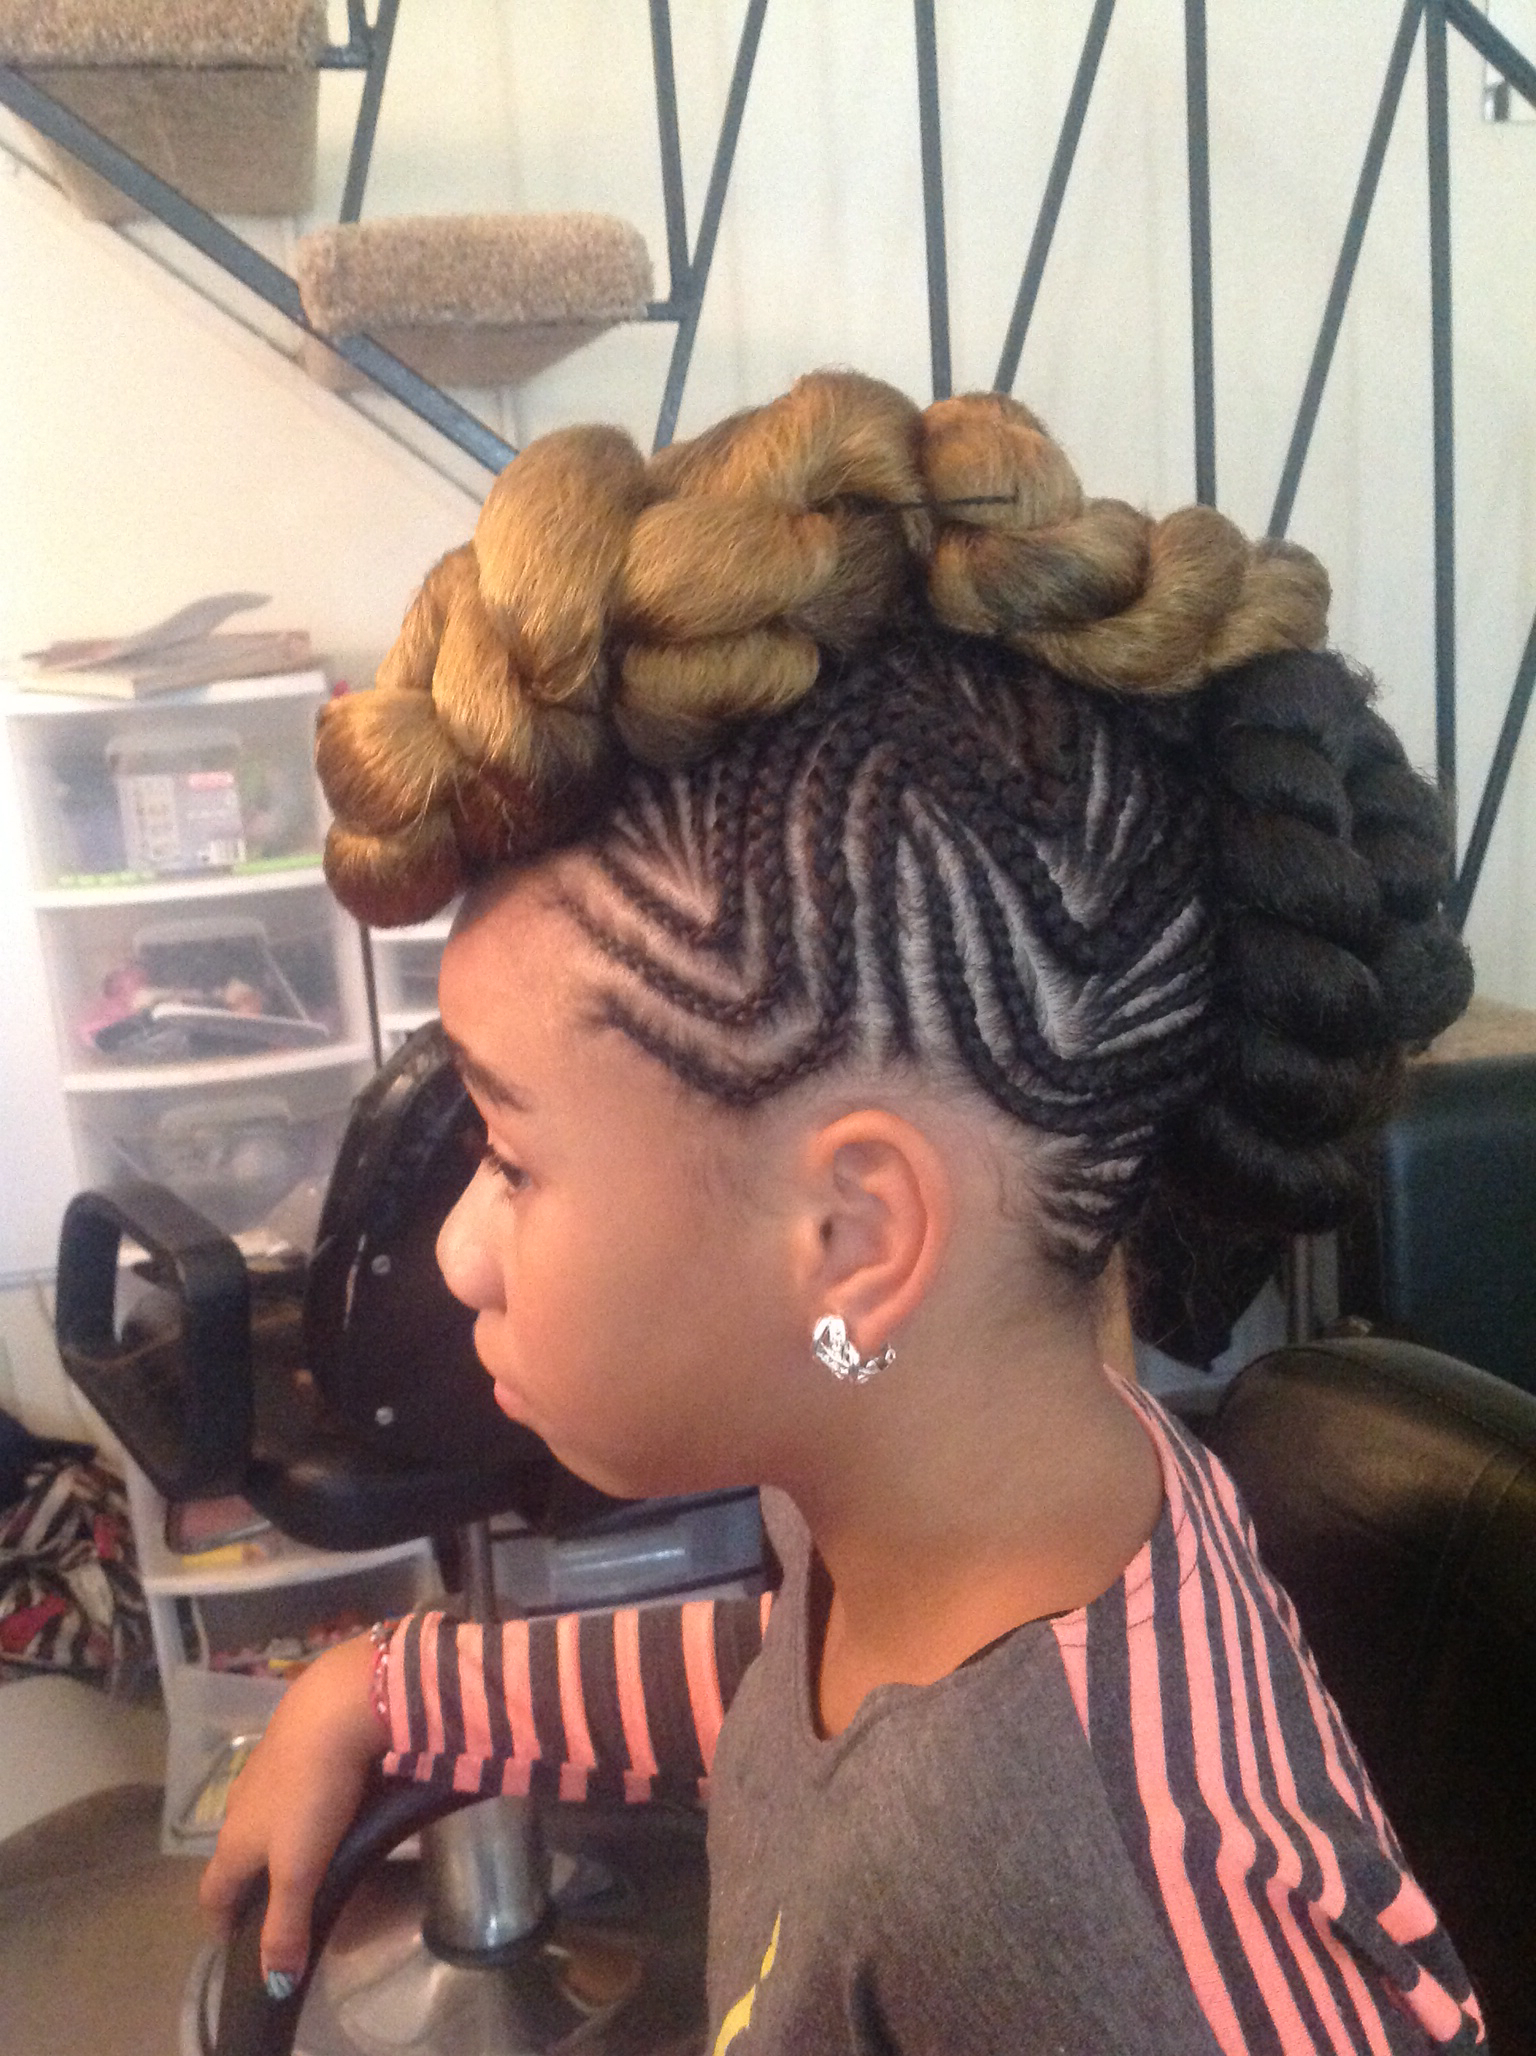 15 Foremost Braided Mohawk Hairstyles – Mohawk With Braids Inside Famous Mohawk Braided Hairstyles With Beads (View 15 of 20)